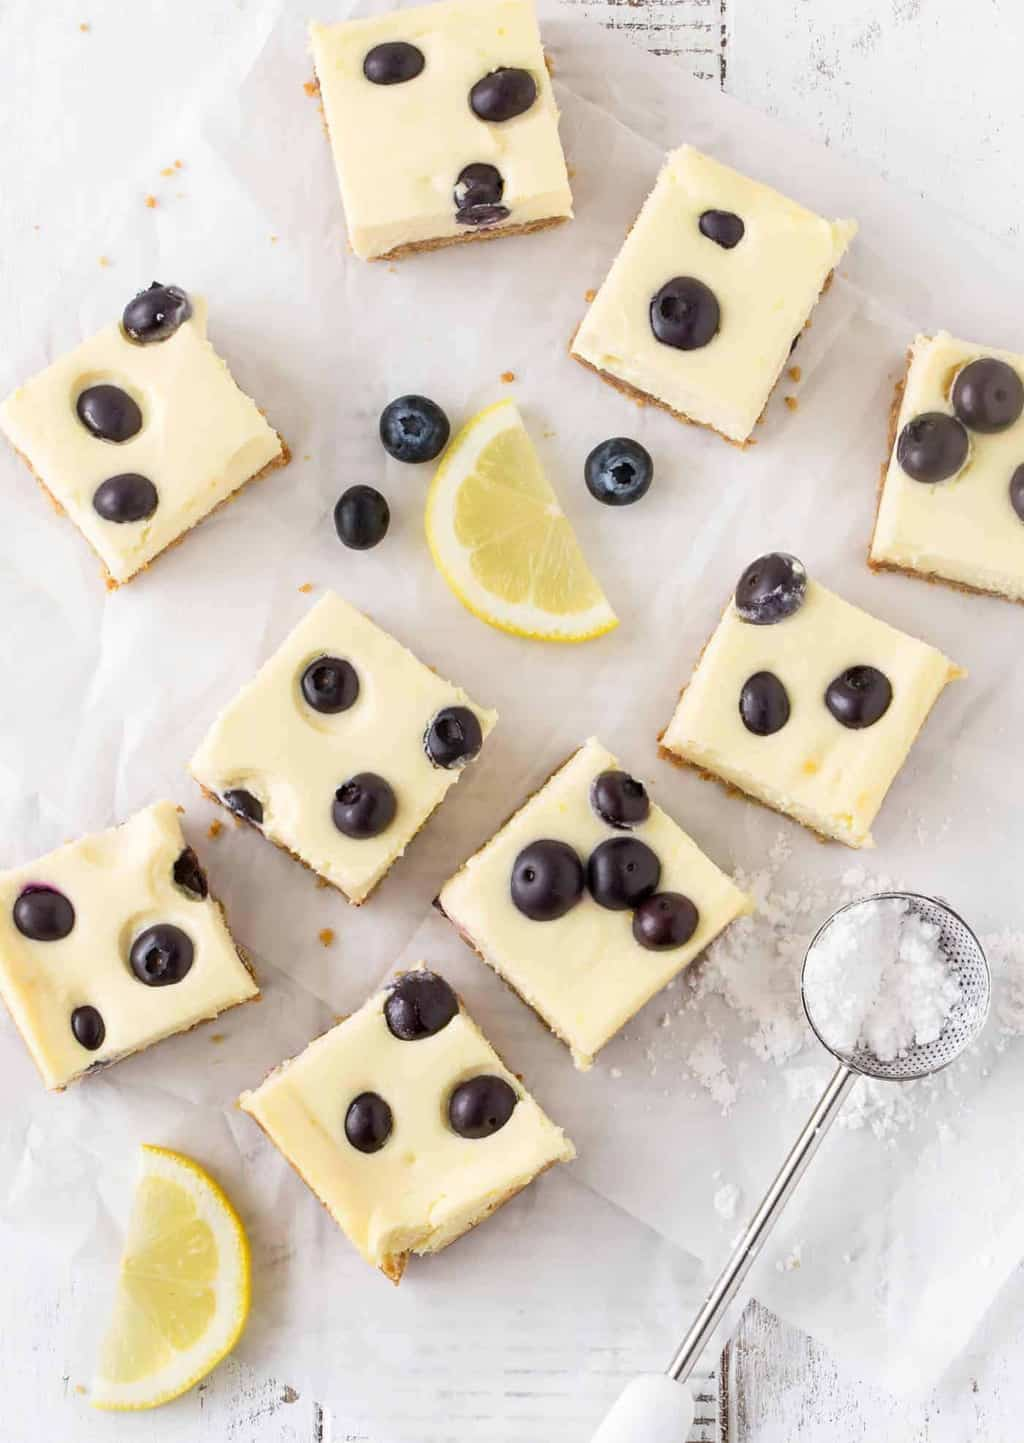 Lemon Blueberry Cheesecake Bars on white background with powdered sugar and lemon slices for garnish.